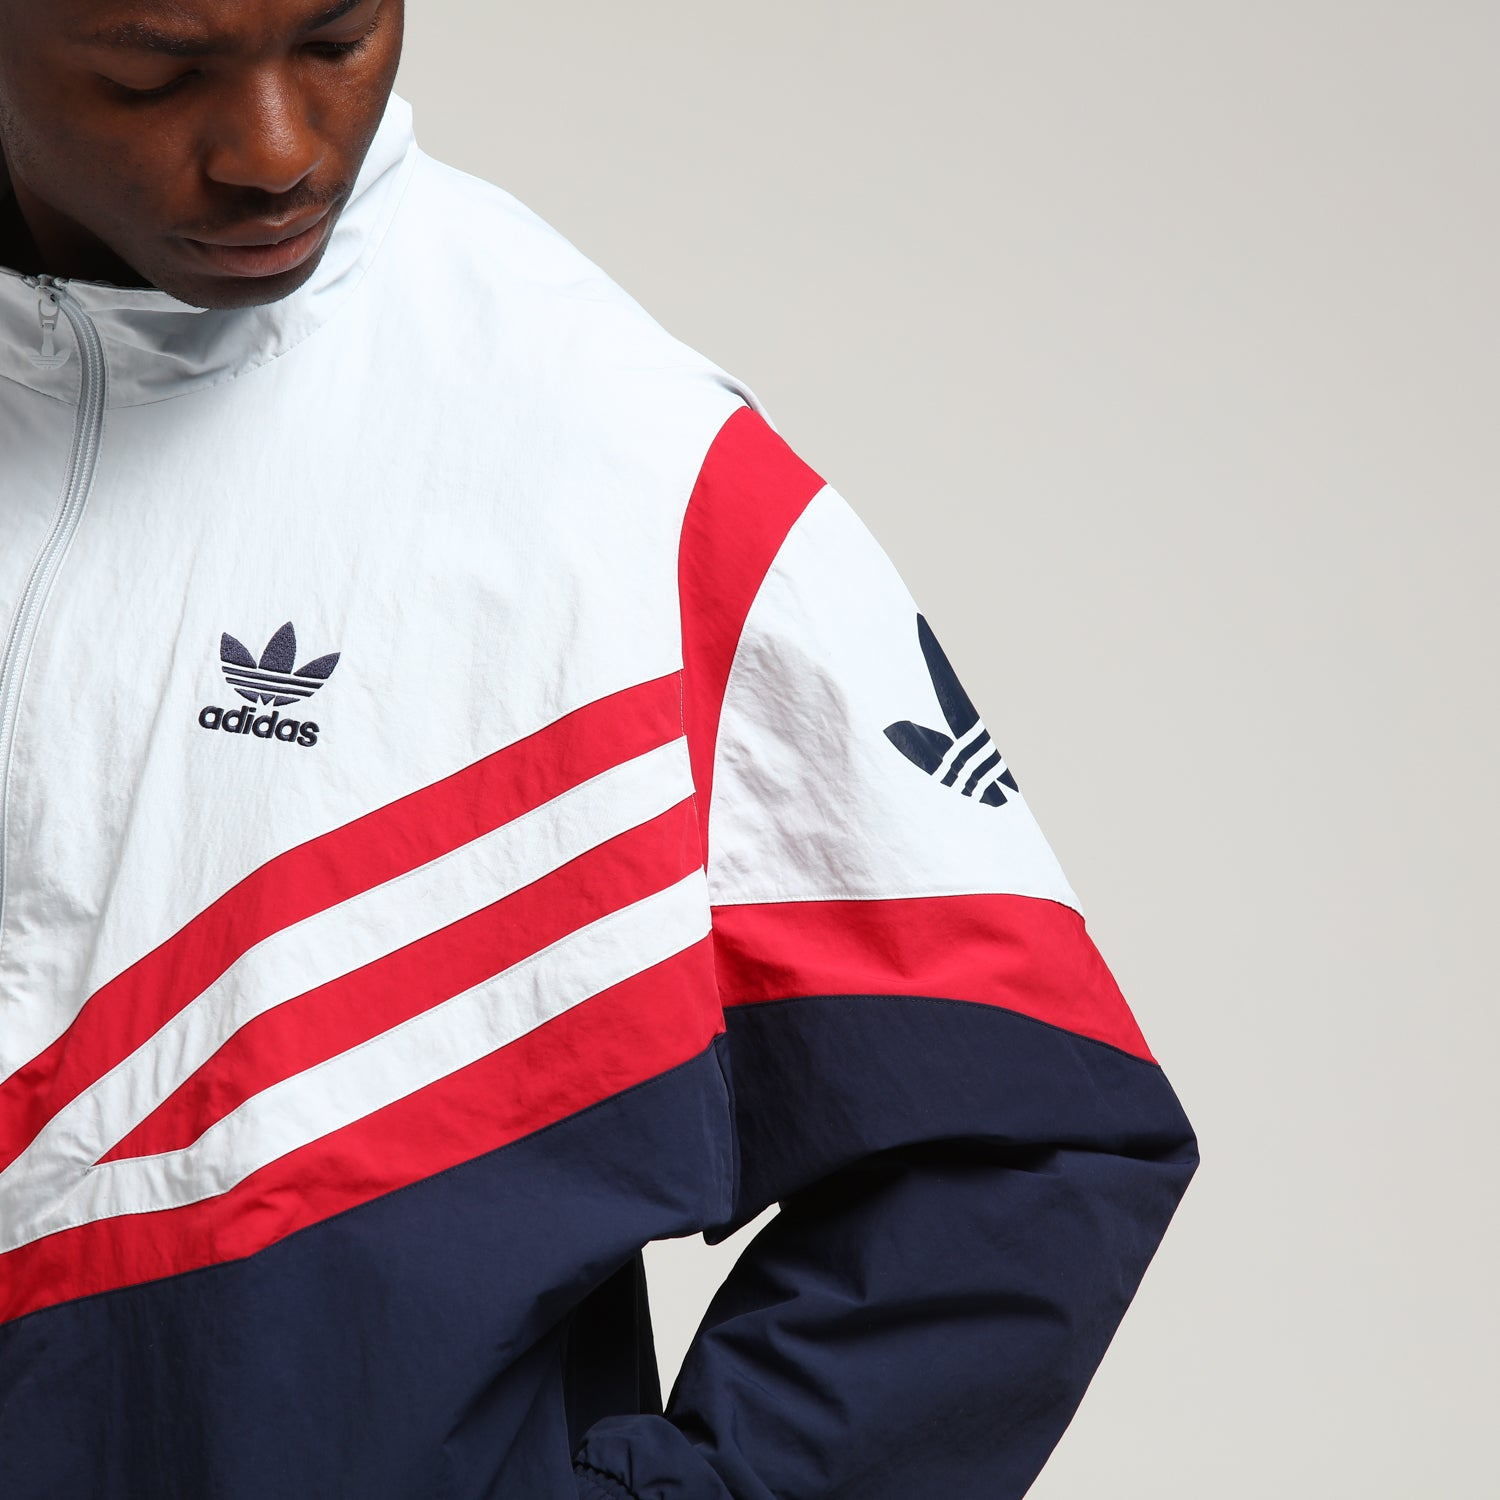 Wear Resisting Adidas Training Jacket Tops Navy White Red 3